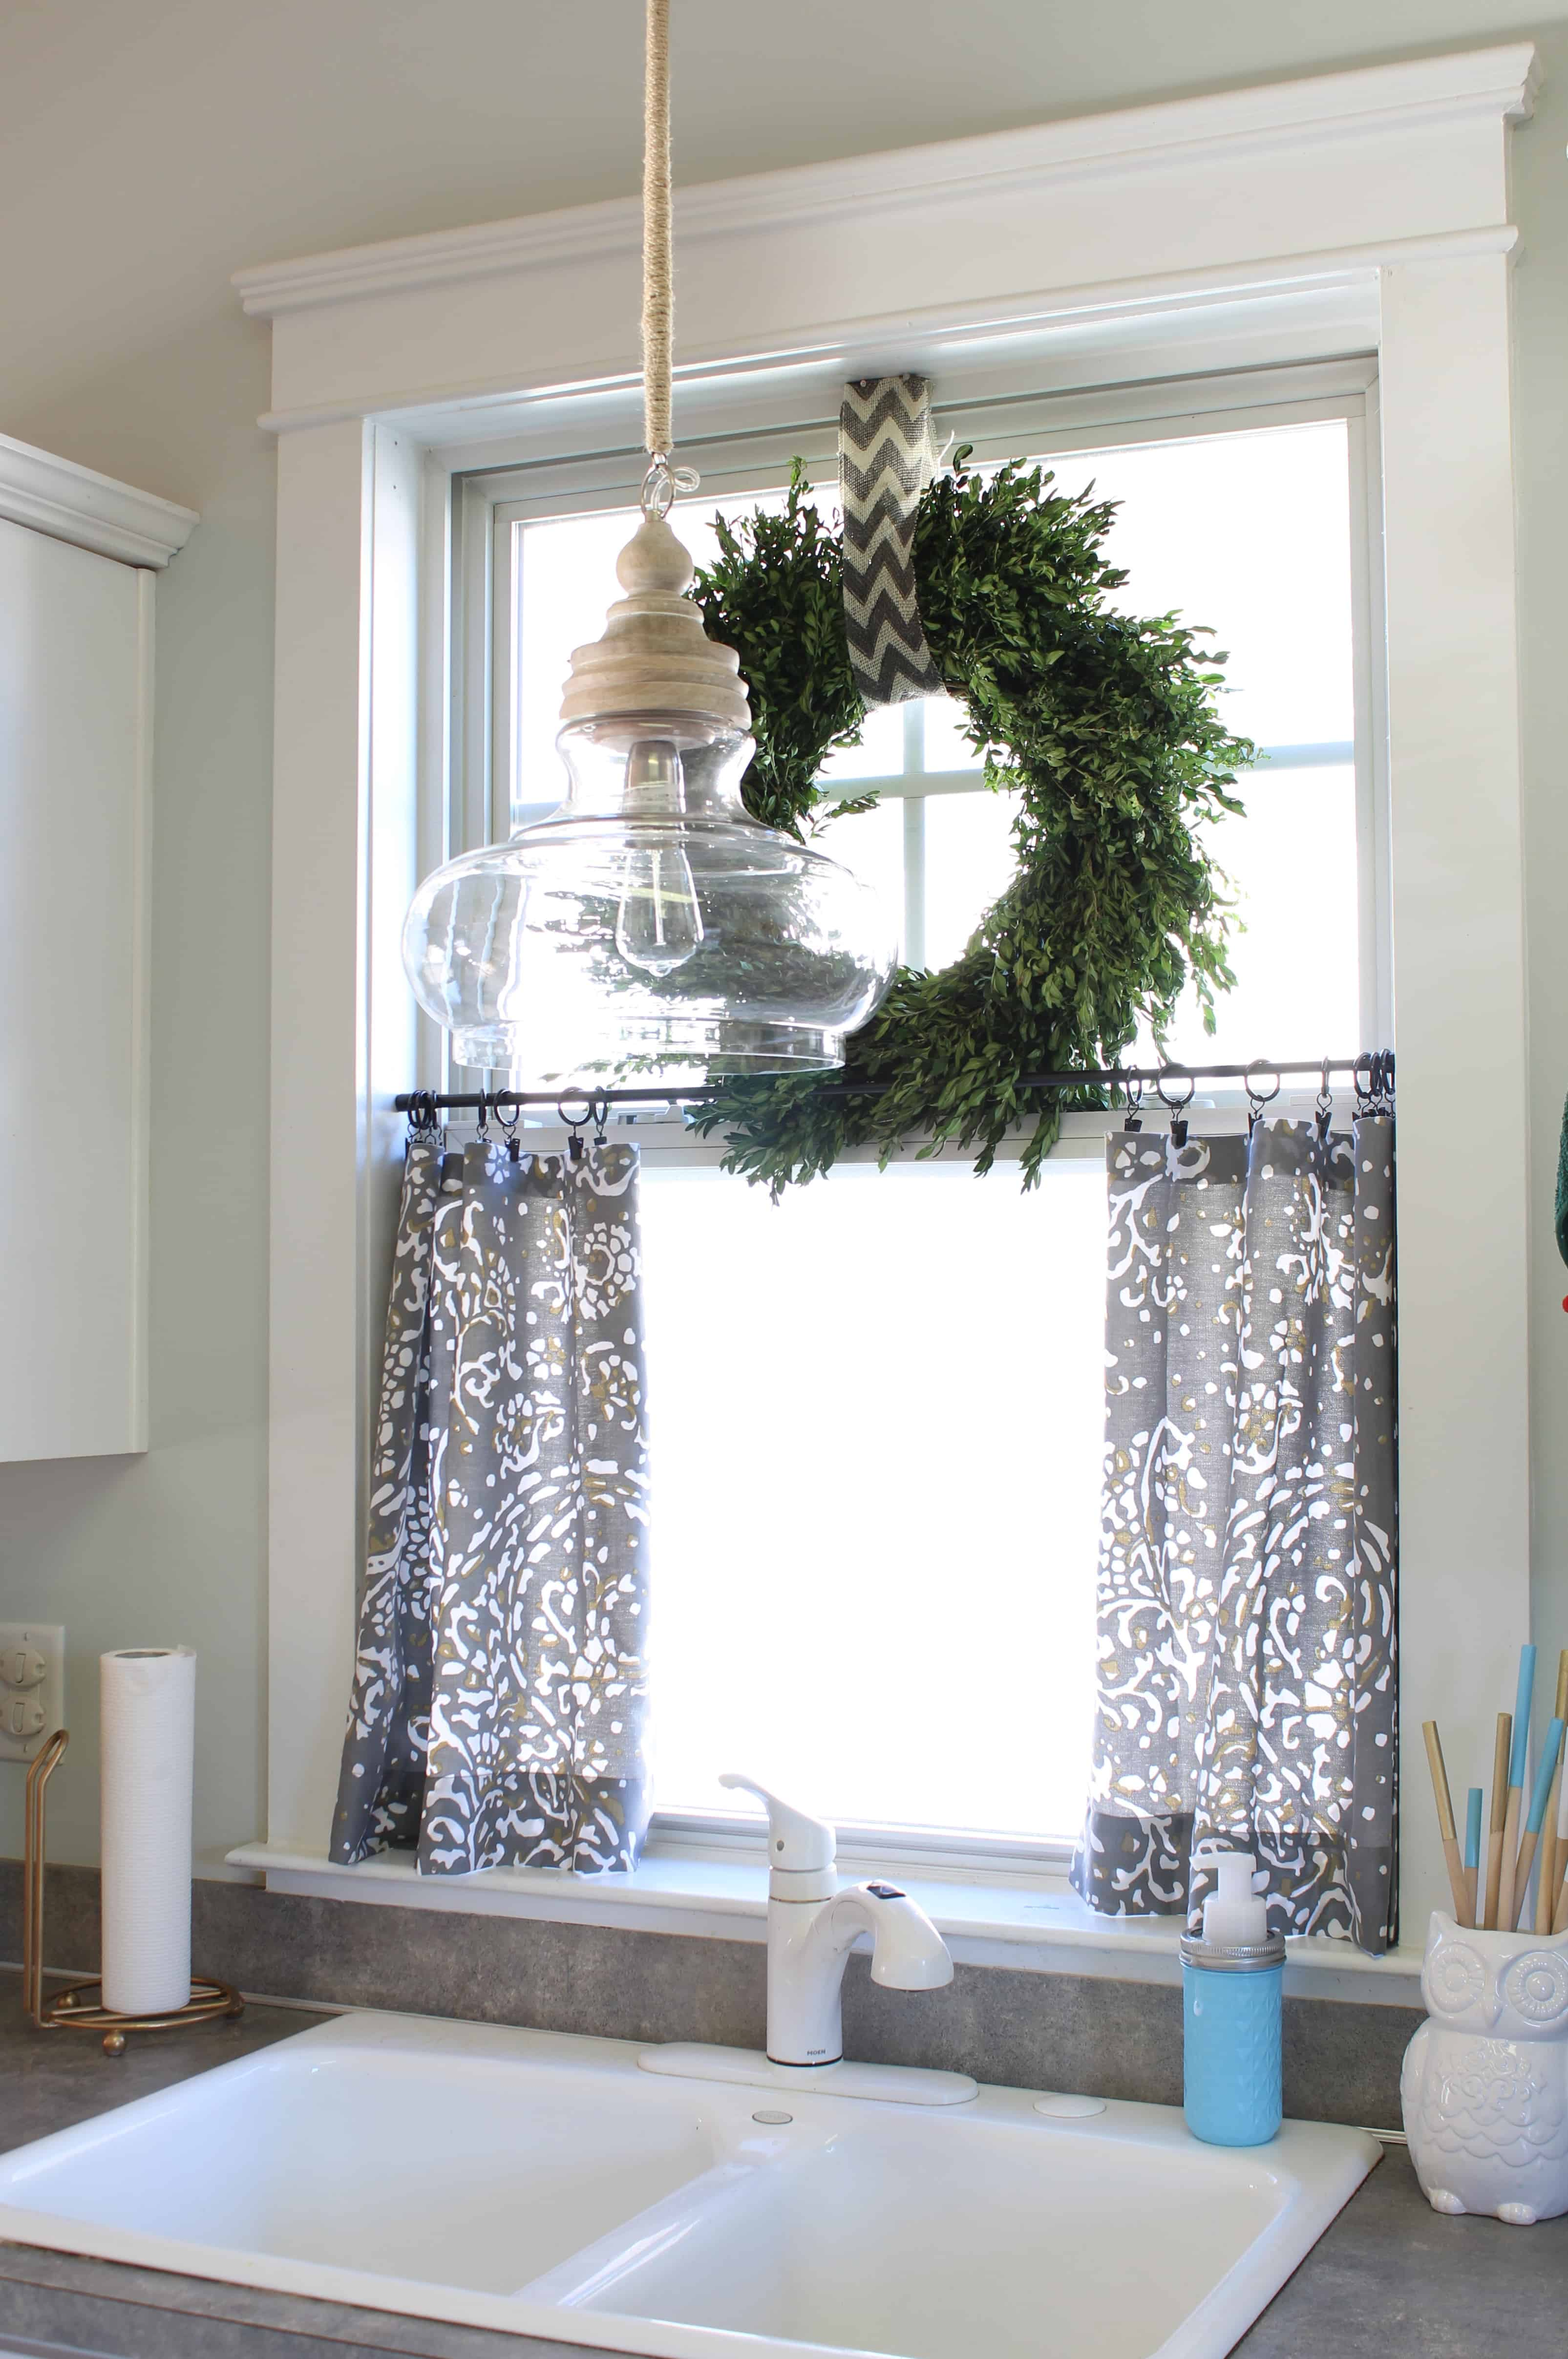 Spannende Fensterdeko Gardinen Ideen Erlene Window Treatments No Sew Cafe Curtains Day 22 Simple Stylings